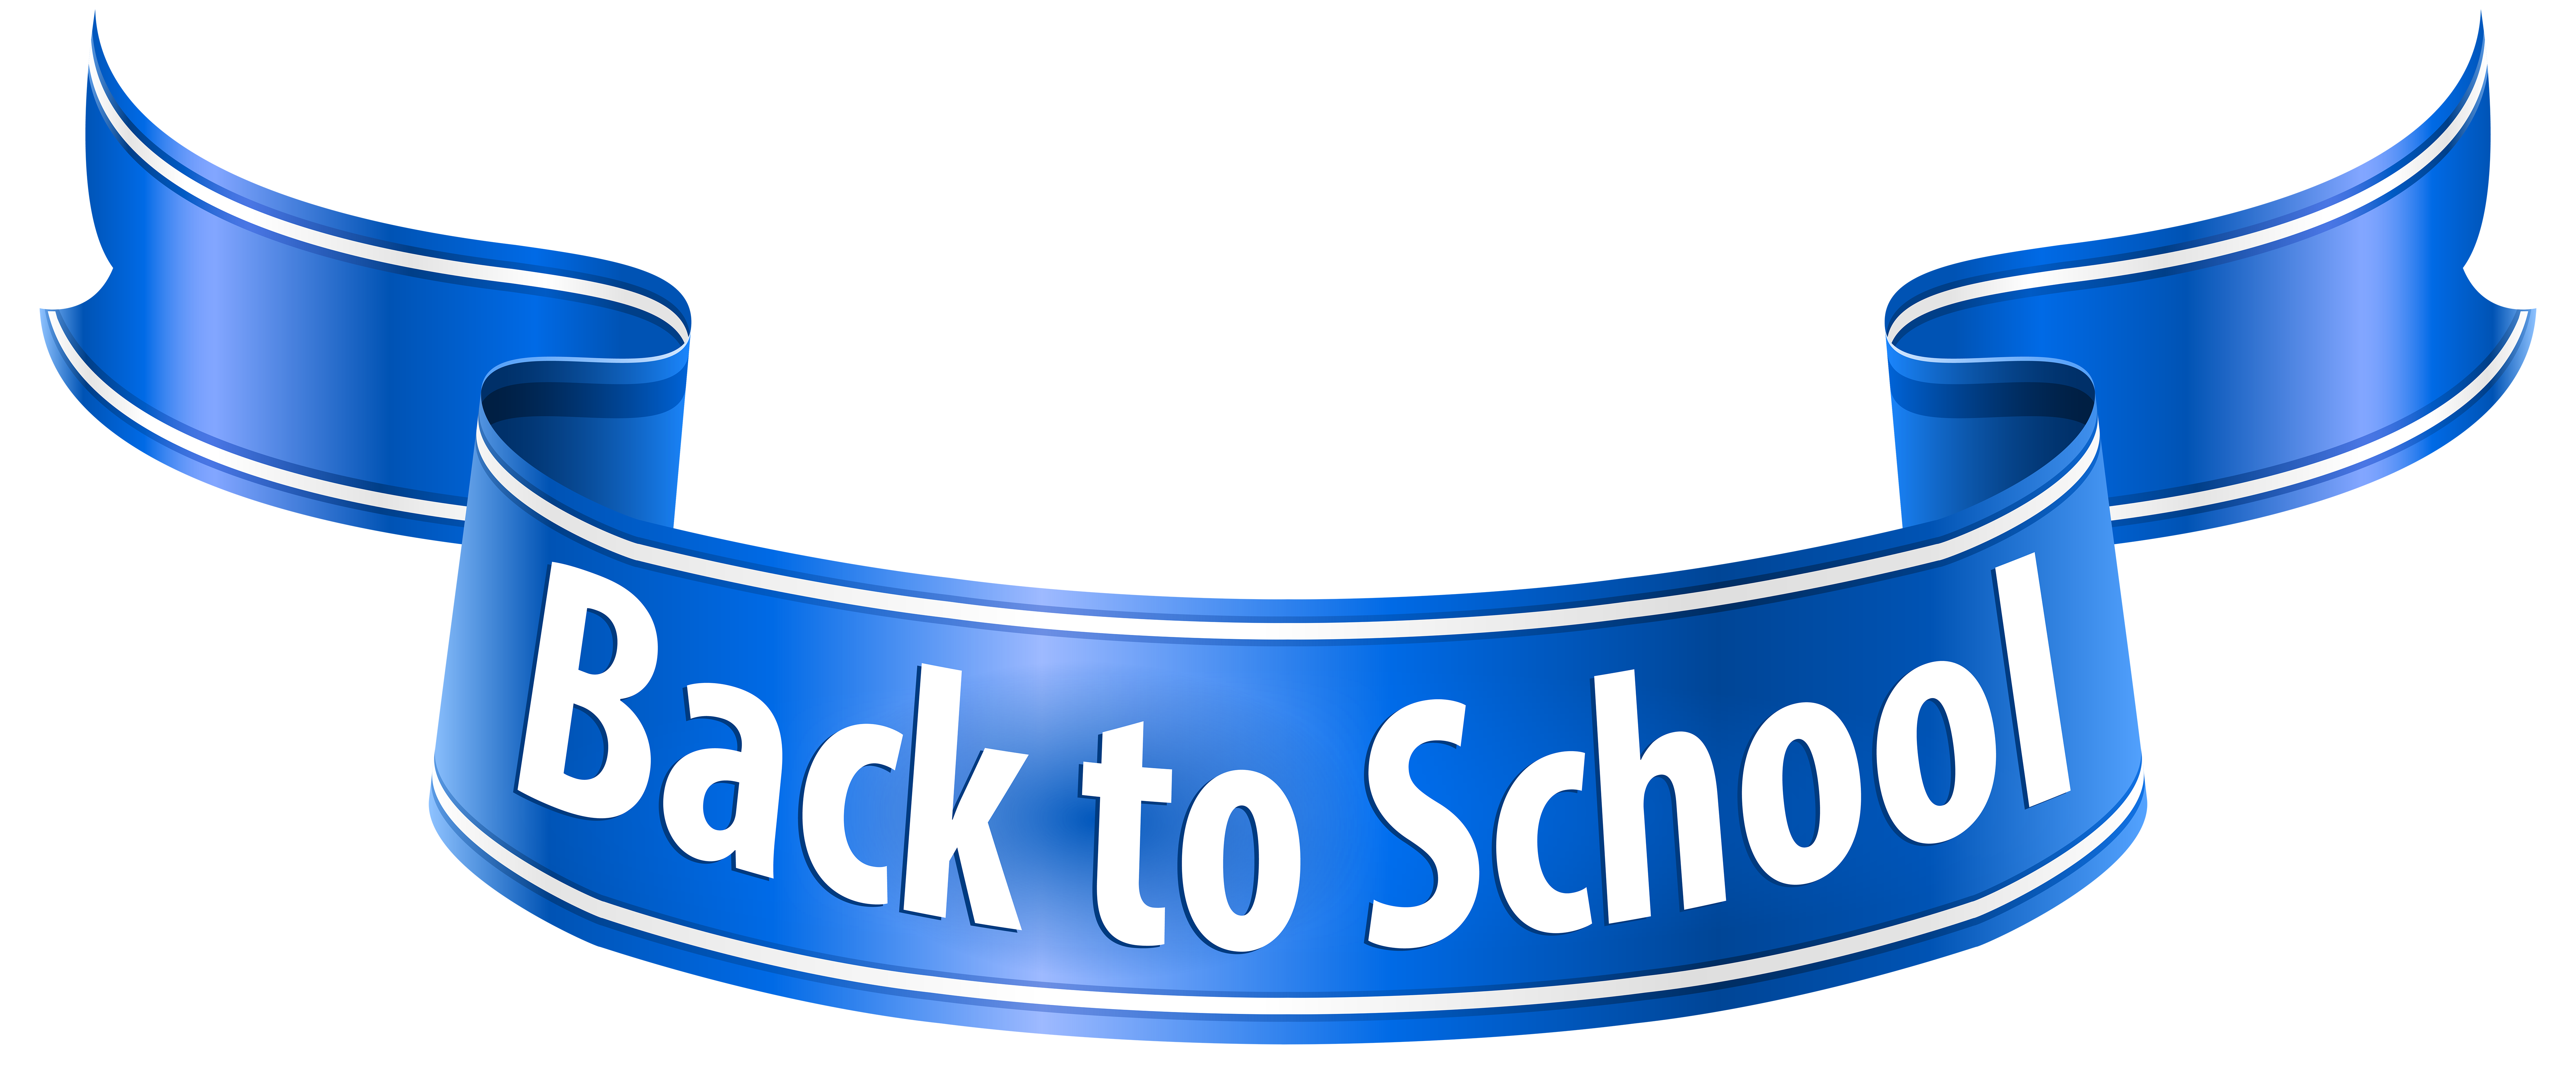 Back to School Banner PNG Clip Art Image.